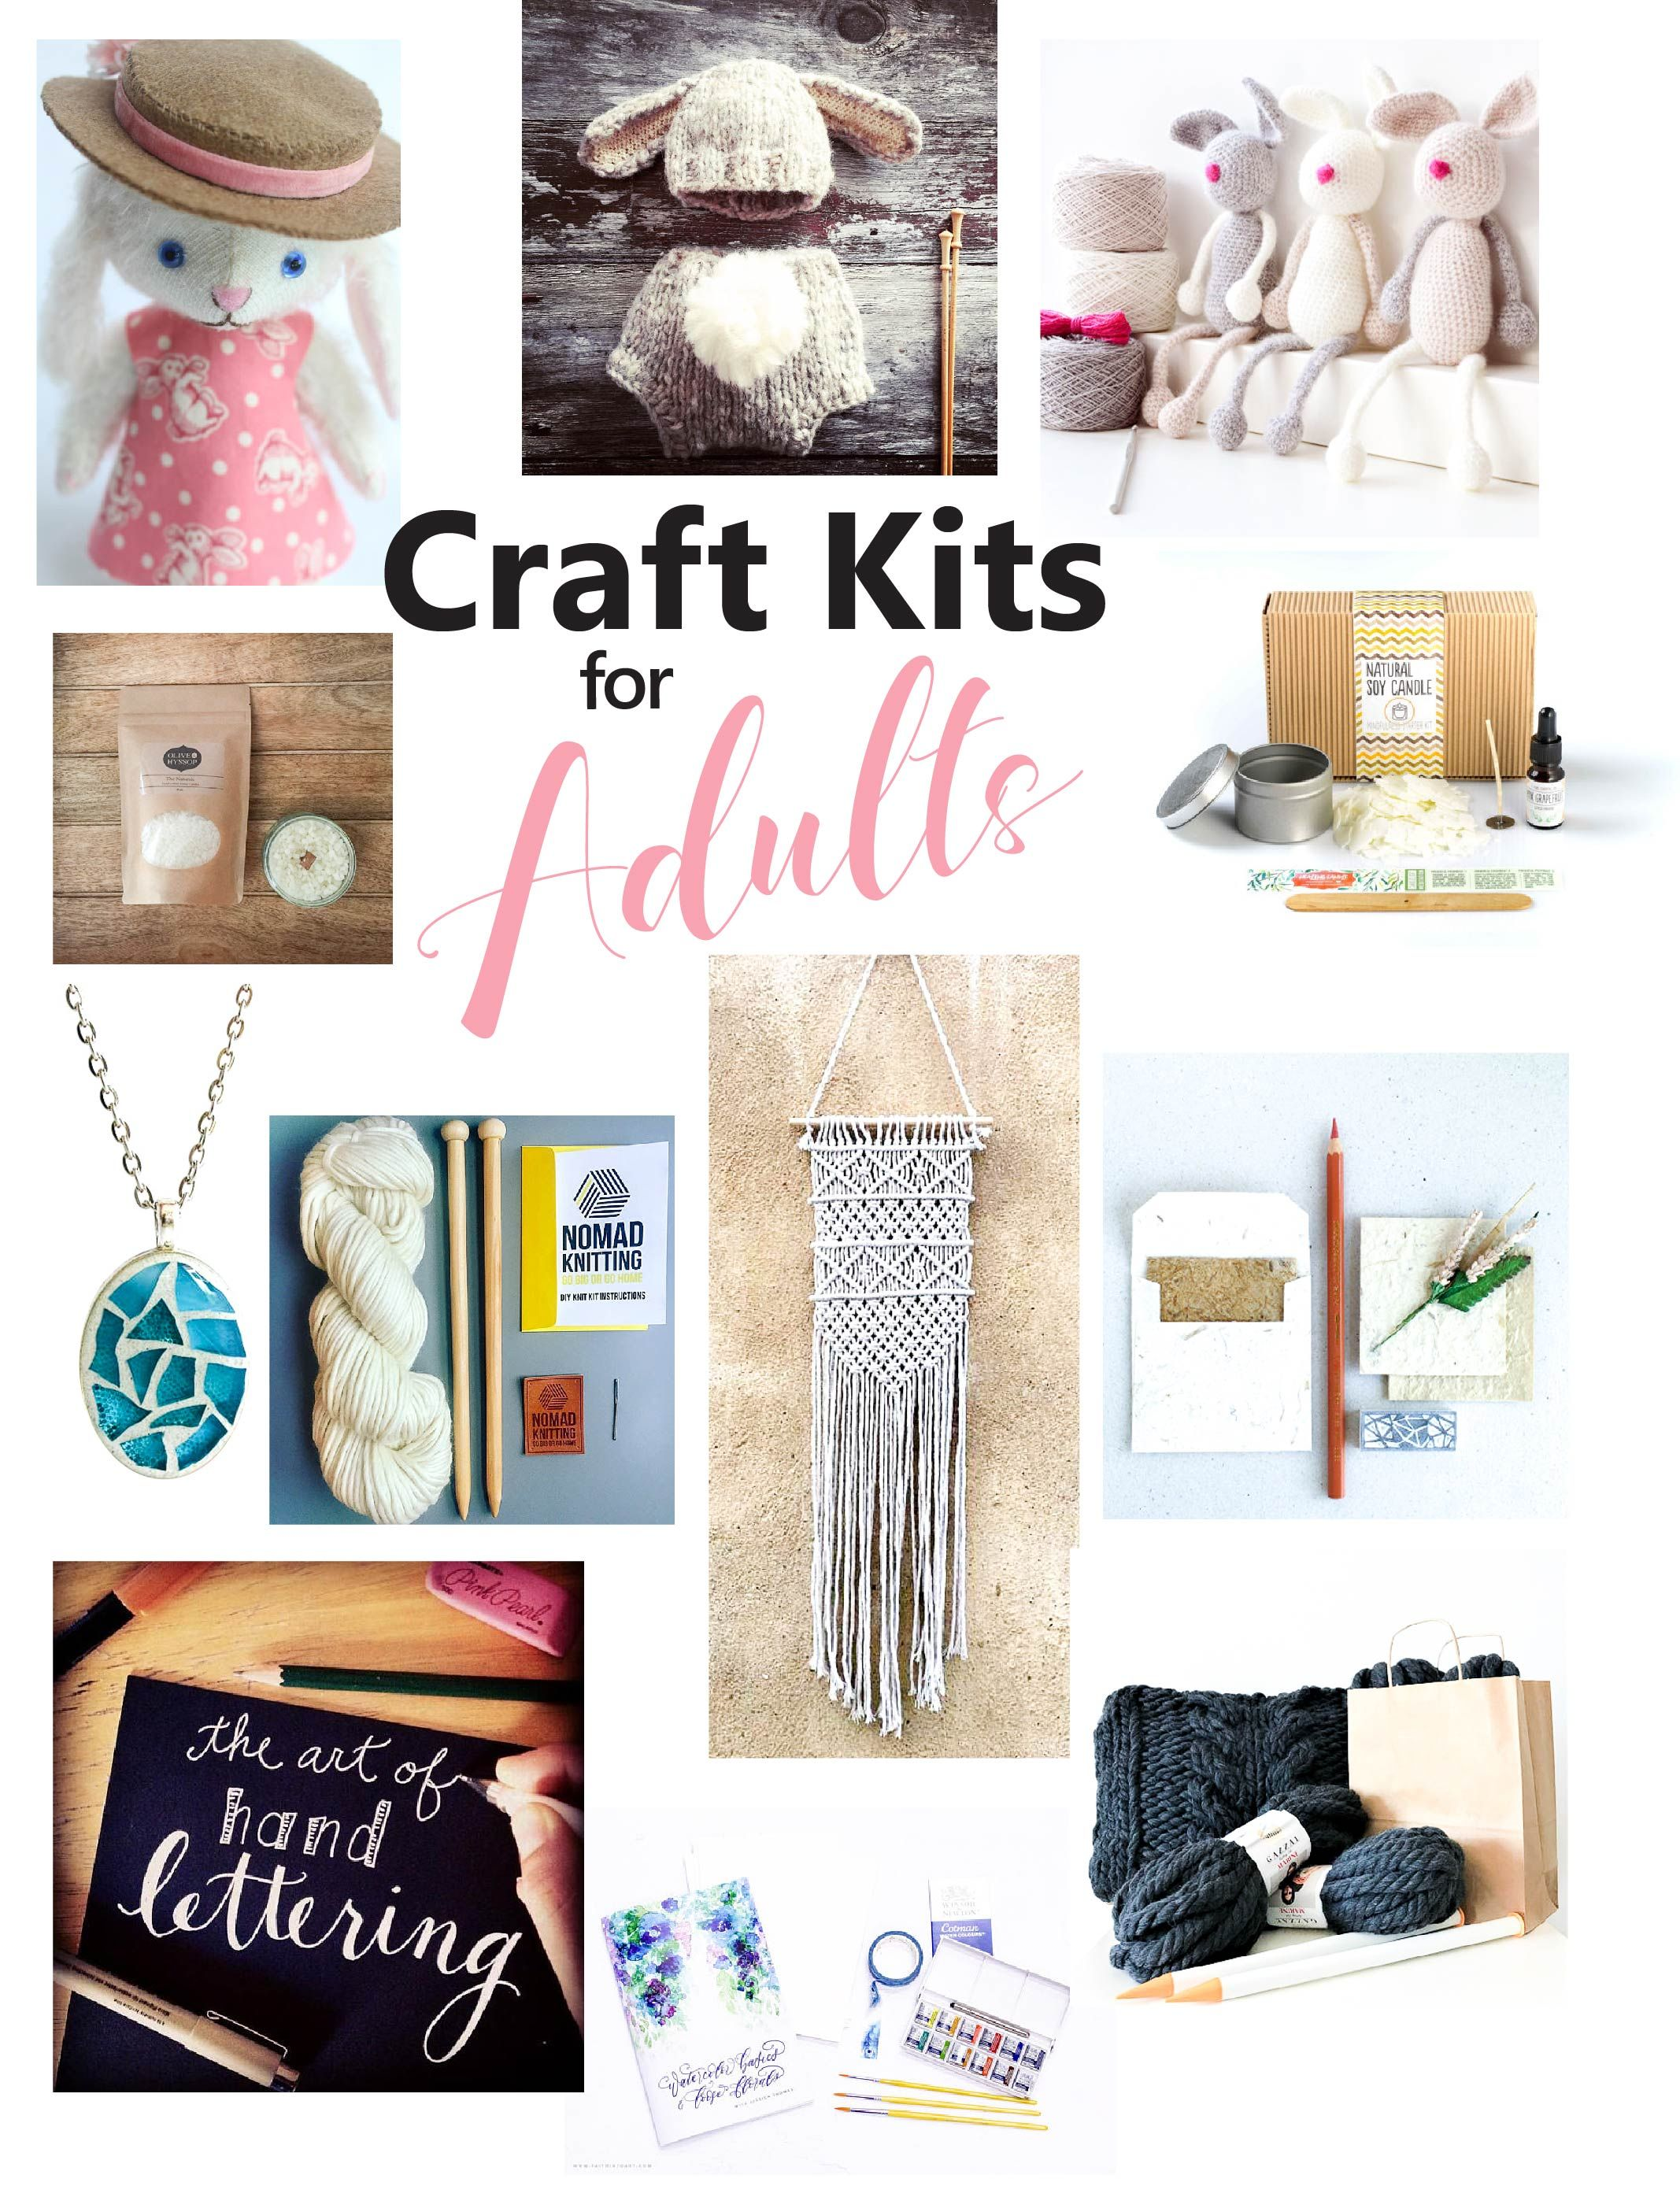 The Best Craft Kits for Adults Diy crafts for adults